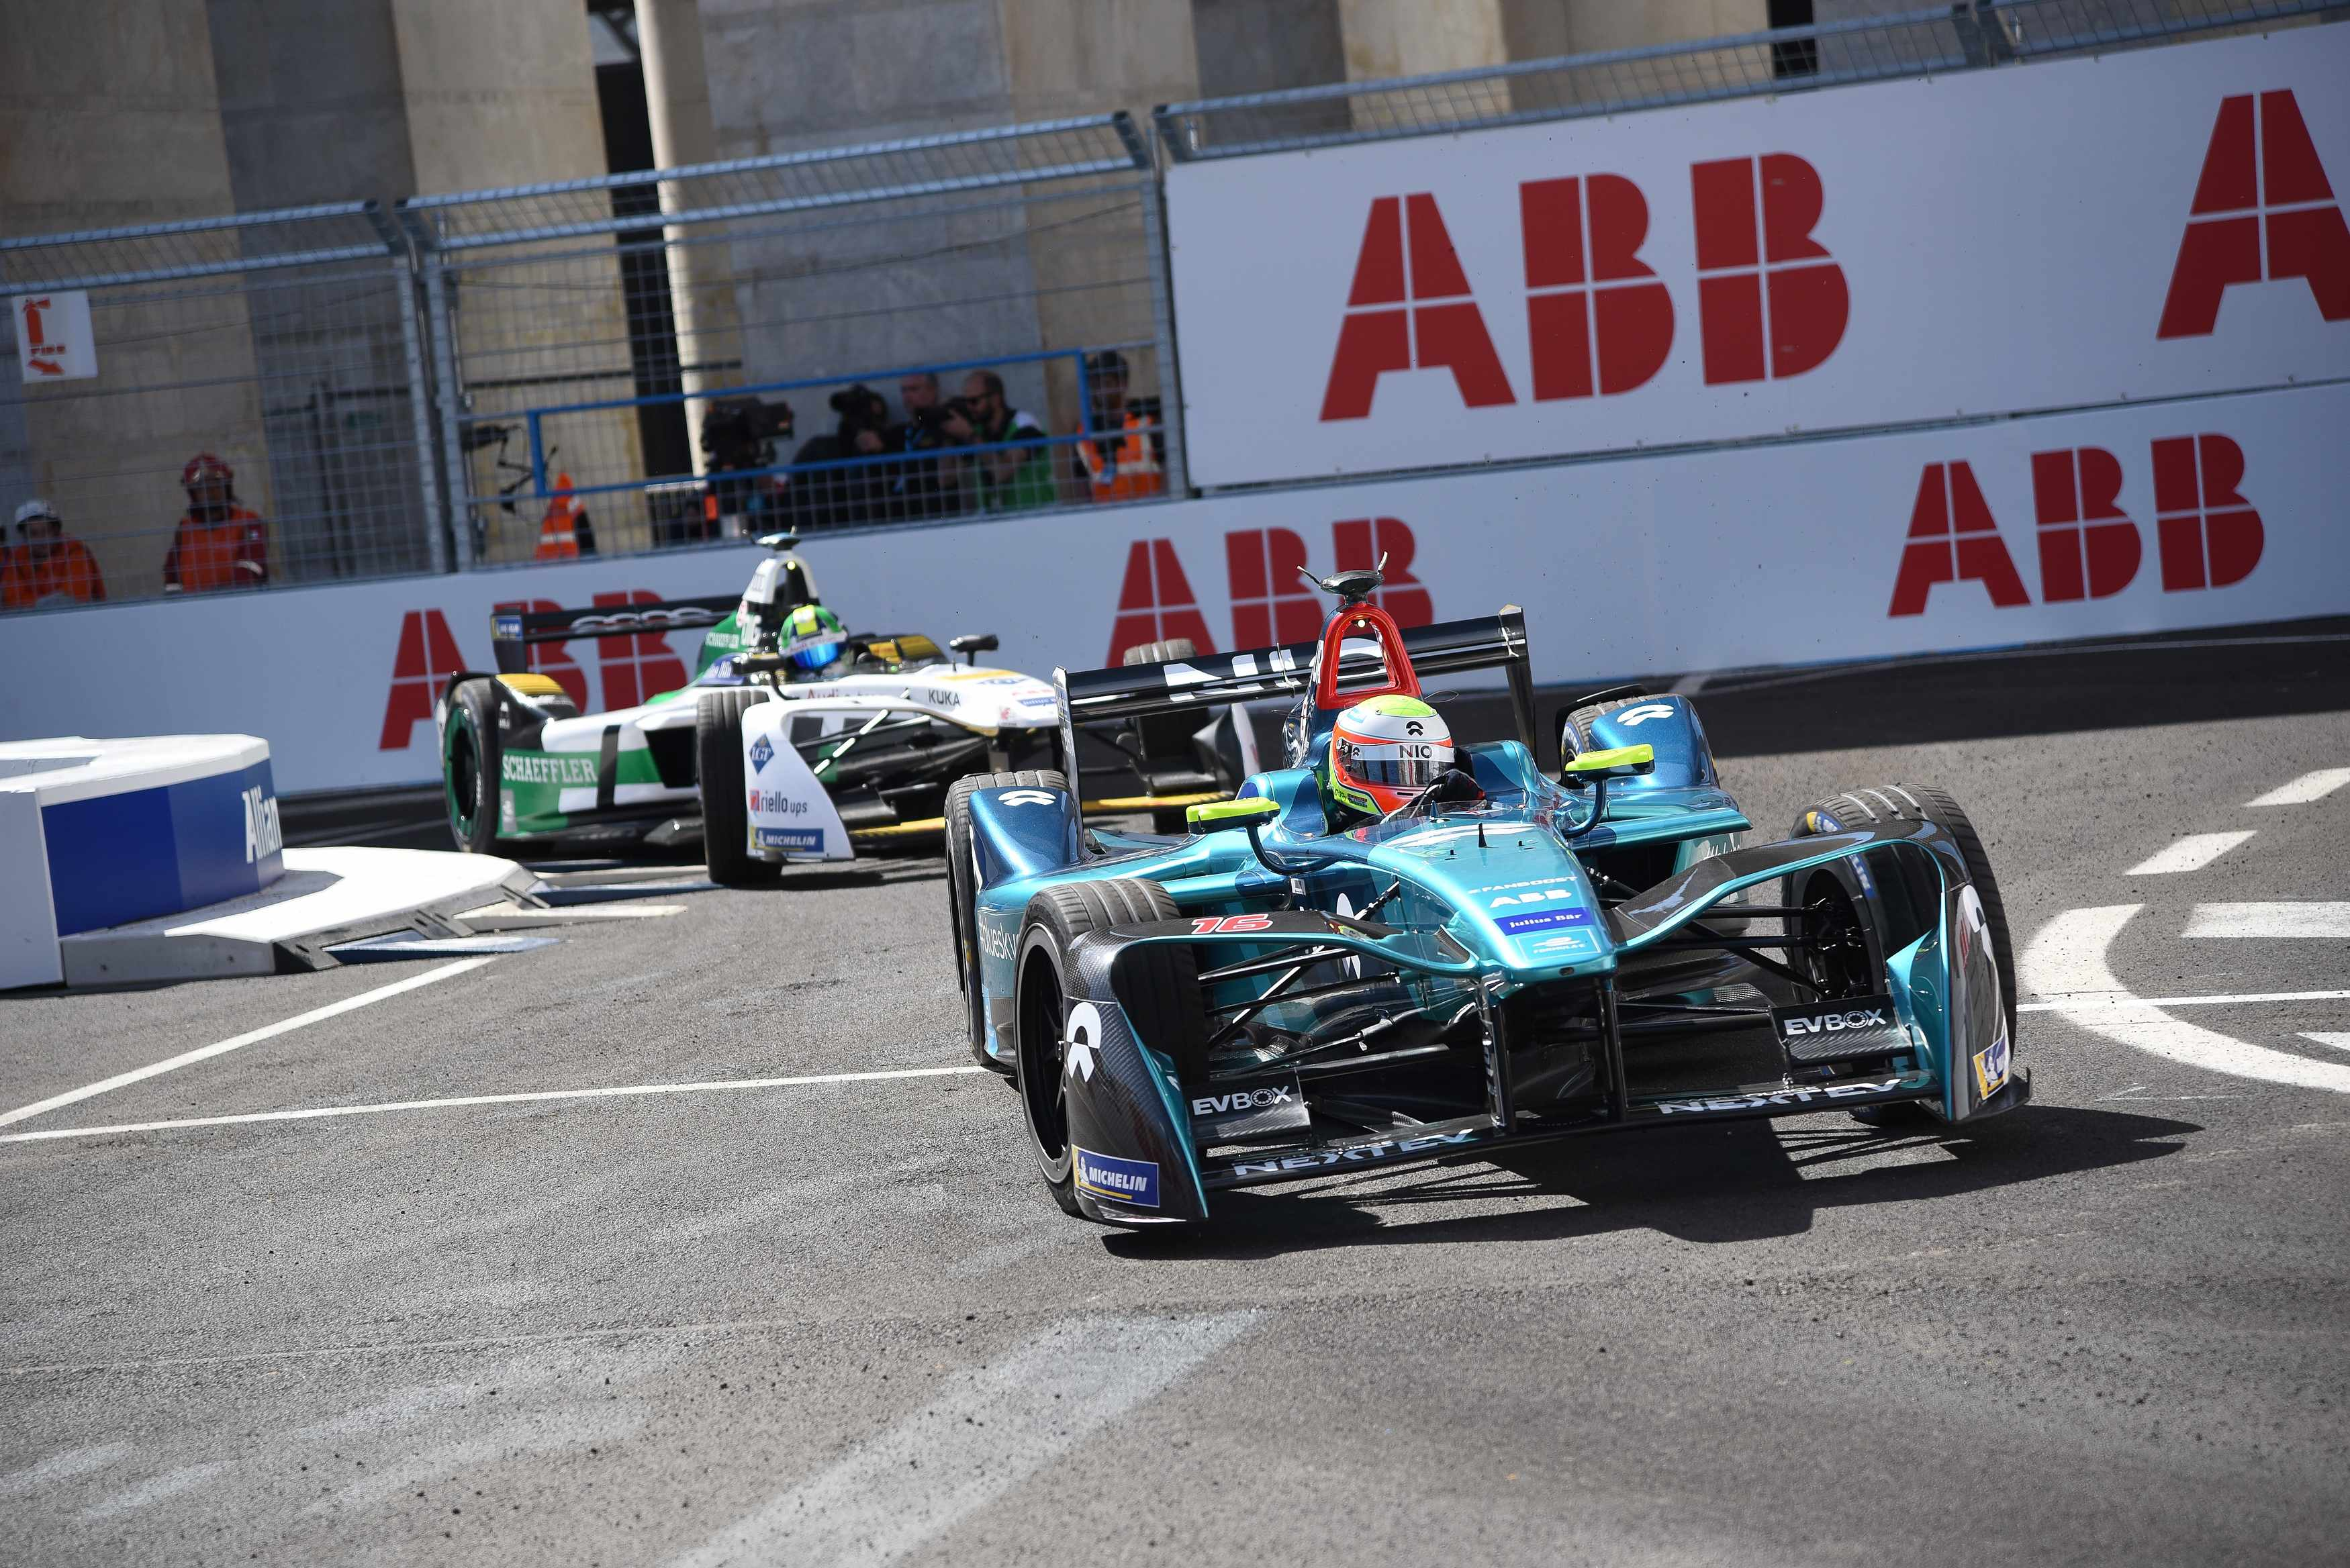 EUR DISTRICT, ROME, LAZIO, ITALY - 2018/04/14: Drivers compete during the  FIA Rome E-Prix, the first Formula E race in Italy. (Photo by Andrea Bruno Diodato/KONTROLAB /LightRocket via Getty Images)